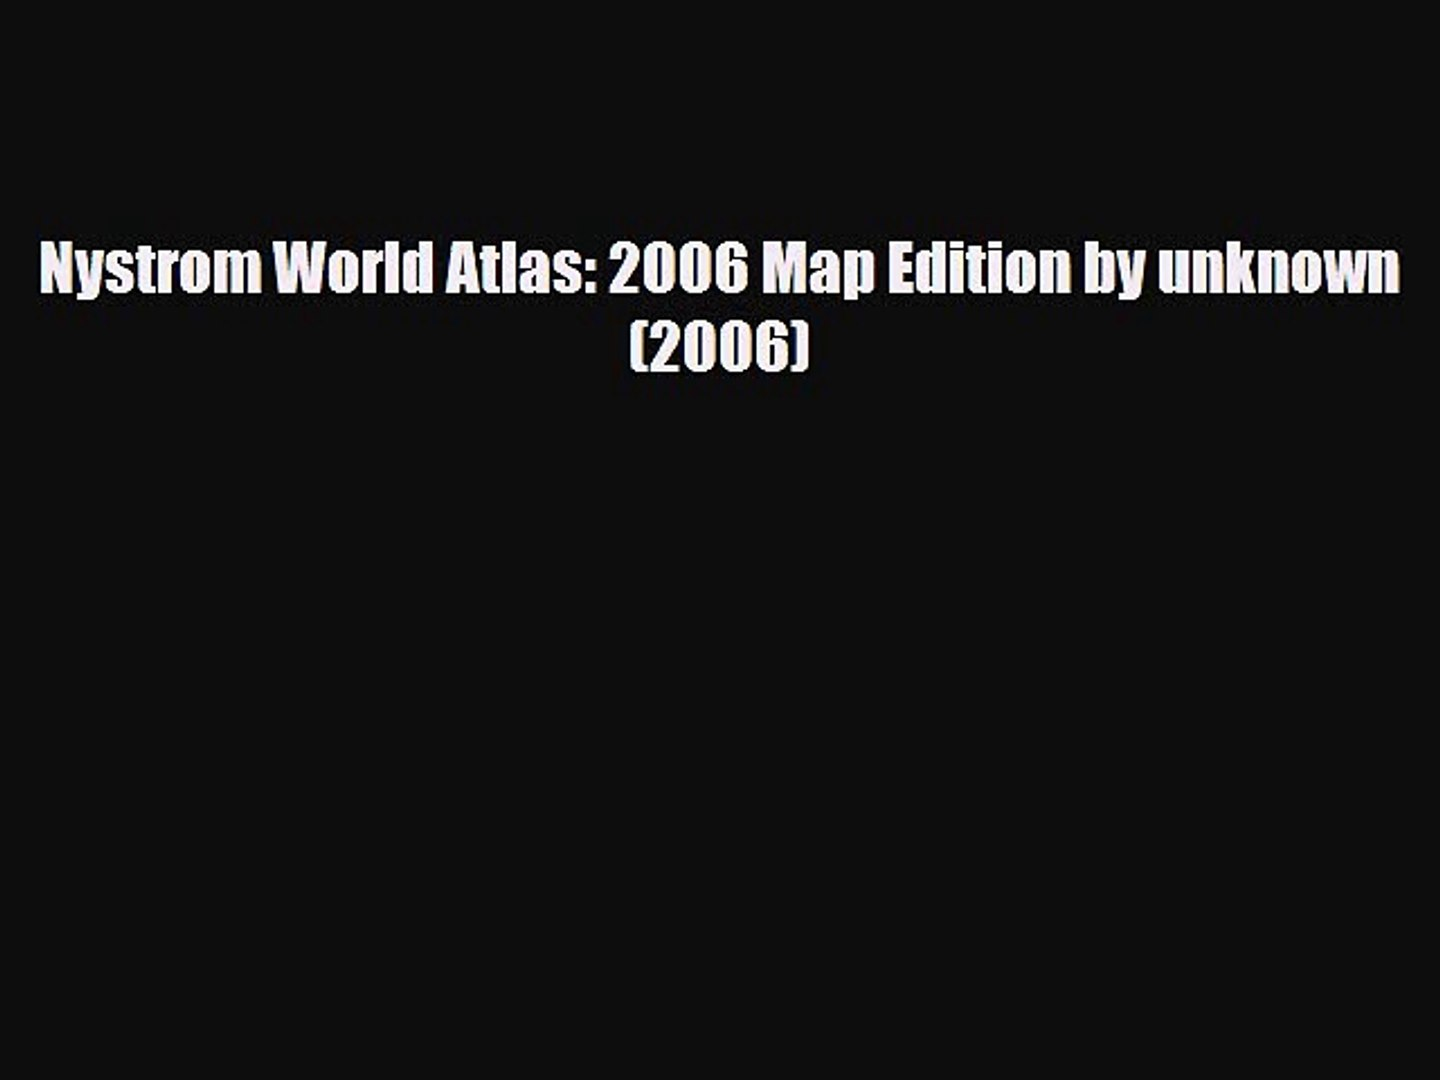 PDF Nystrom World Atlas: 2006 Map Edition by unknown (2006) Ebook